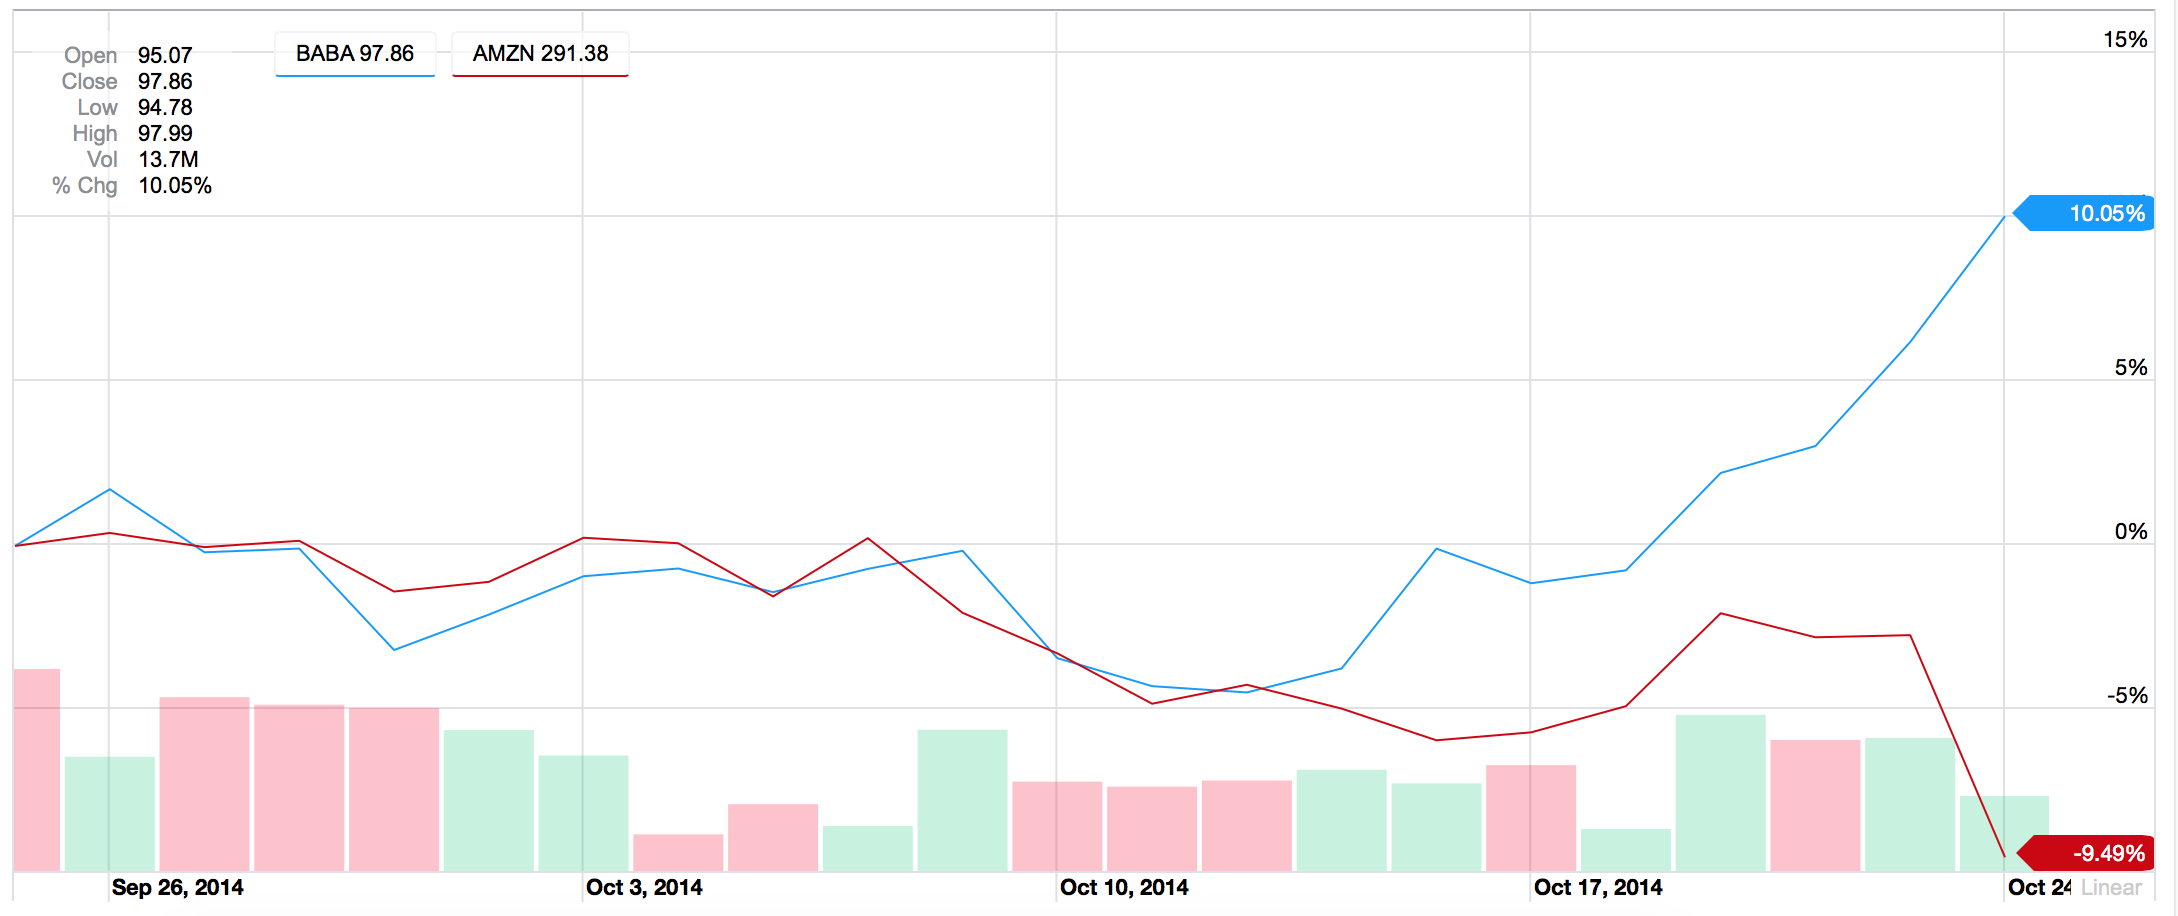 1 month chart of Amazon vs. Alibaba